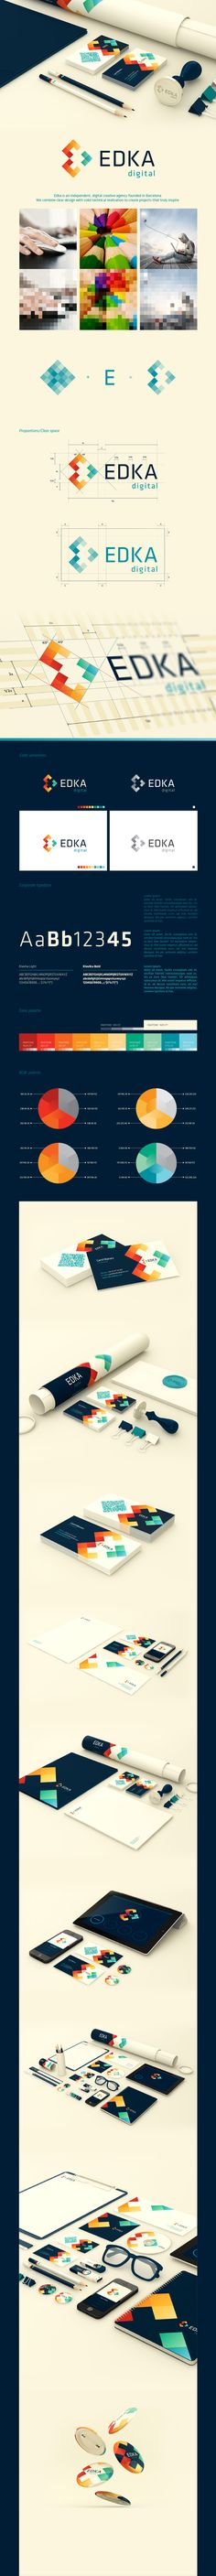 Edka Visual Identity | Abduzeedo Design Inspiration